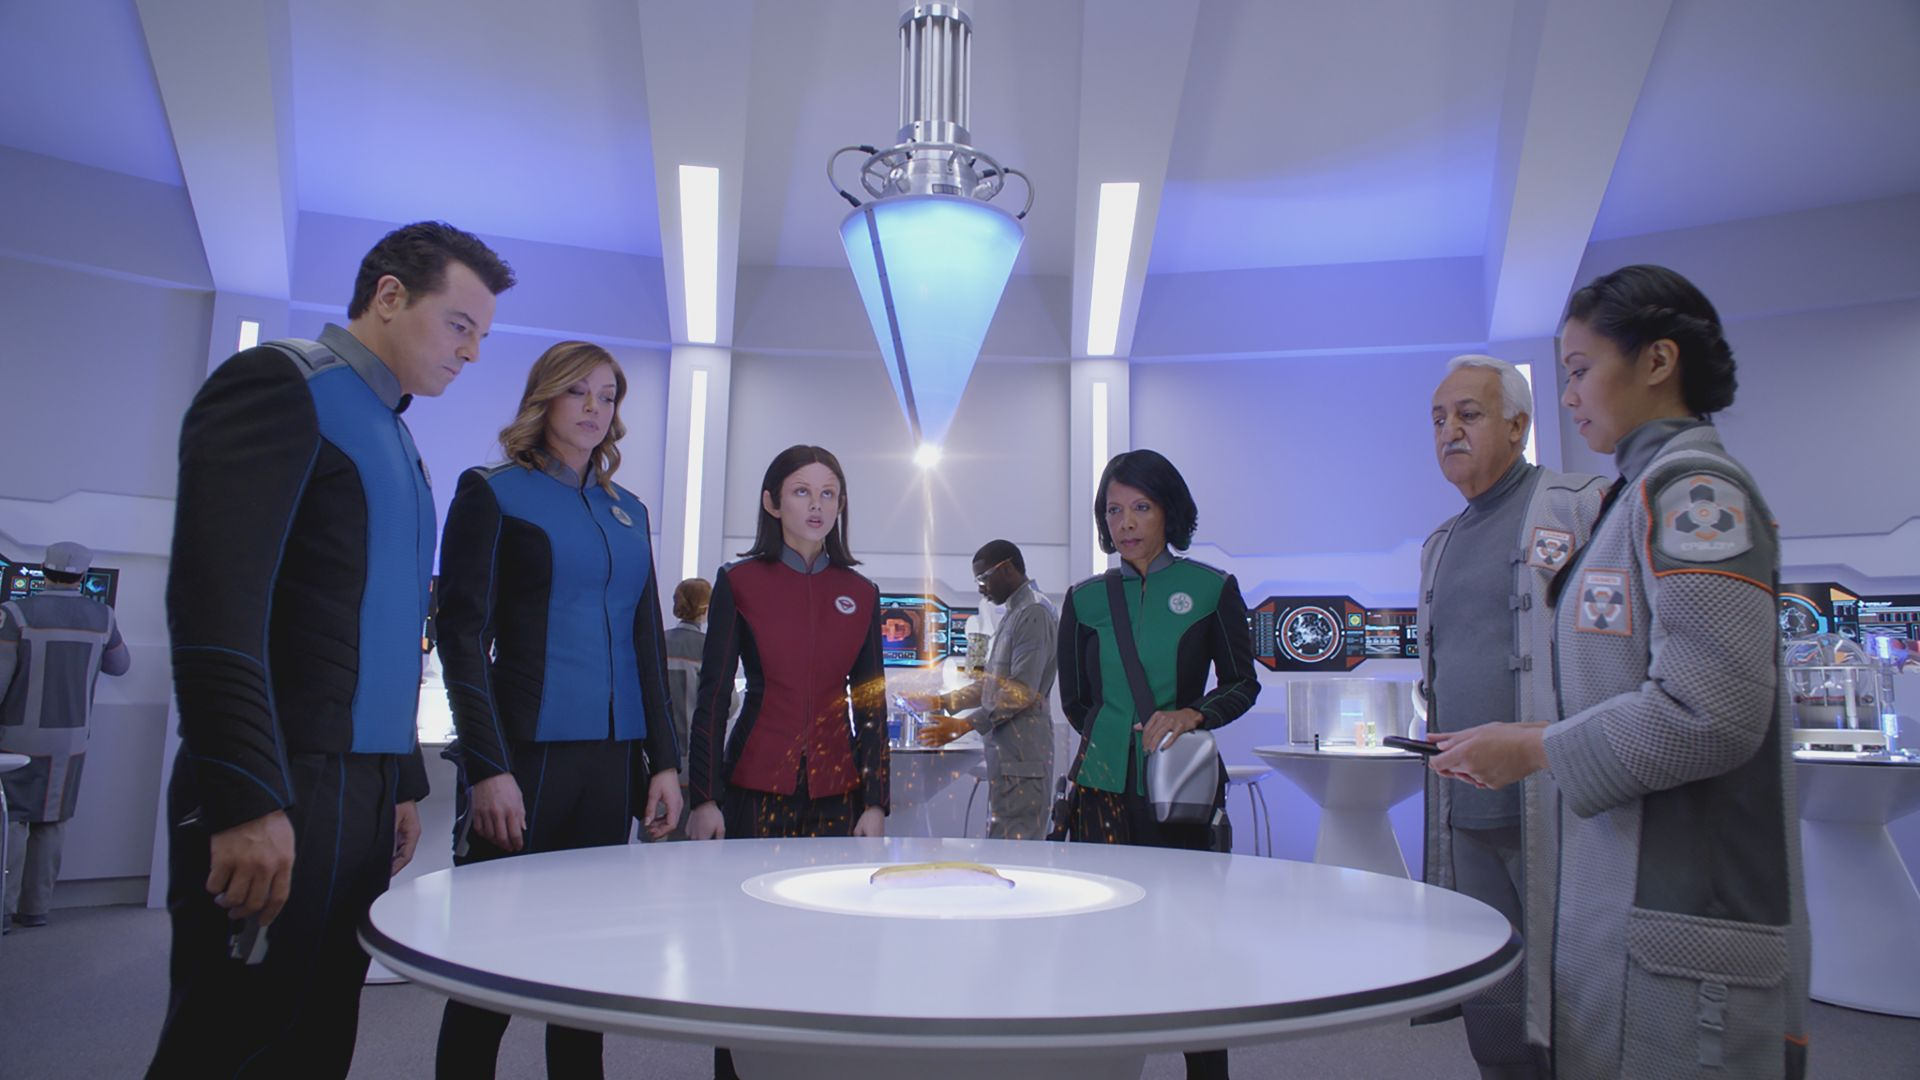 Orville, Пенни Джонсон Джеральд, Сет Макфарлейн, Кристин Корпуз, Хальстон Сейдж, лучшие сериалы, The Orville, Penny Johnson Jerald, Seth MacFarlane, Christine Corpuz, Halston Sage, best tv series (horizontal)